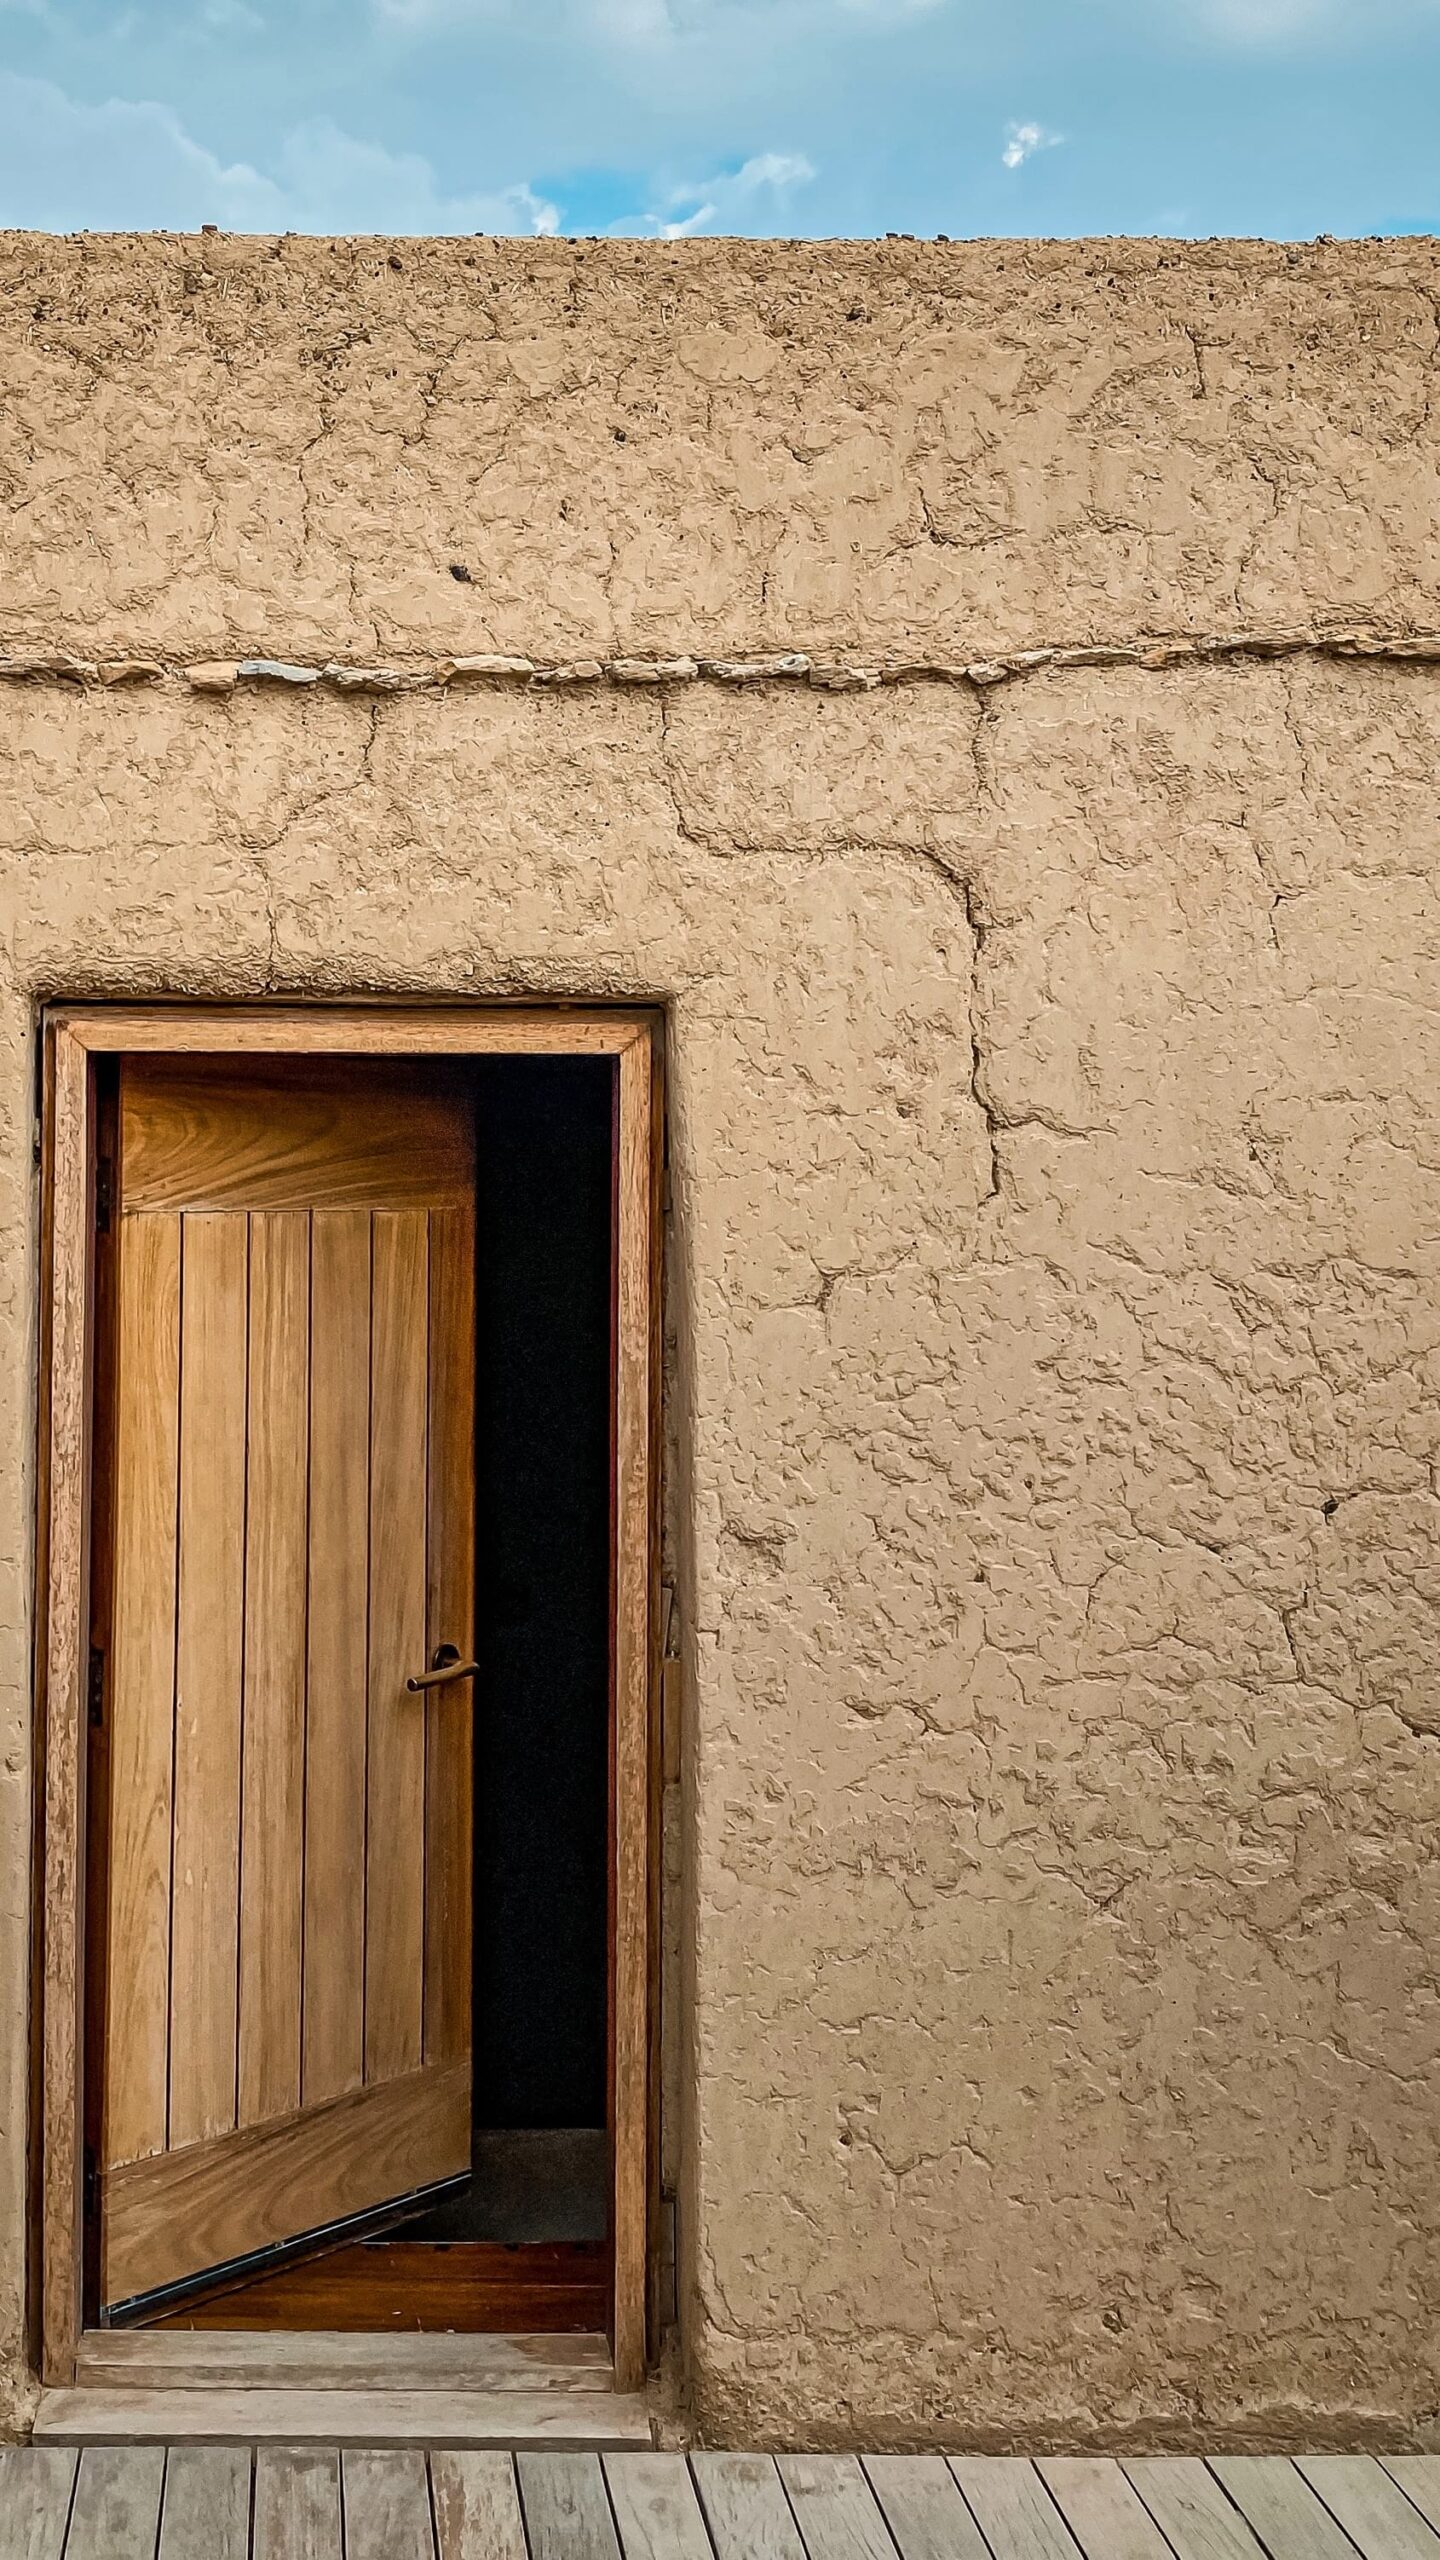 A door in a an old housing with wall having slight fringes forming